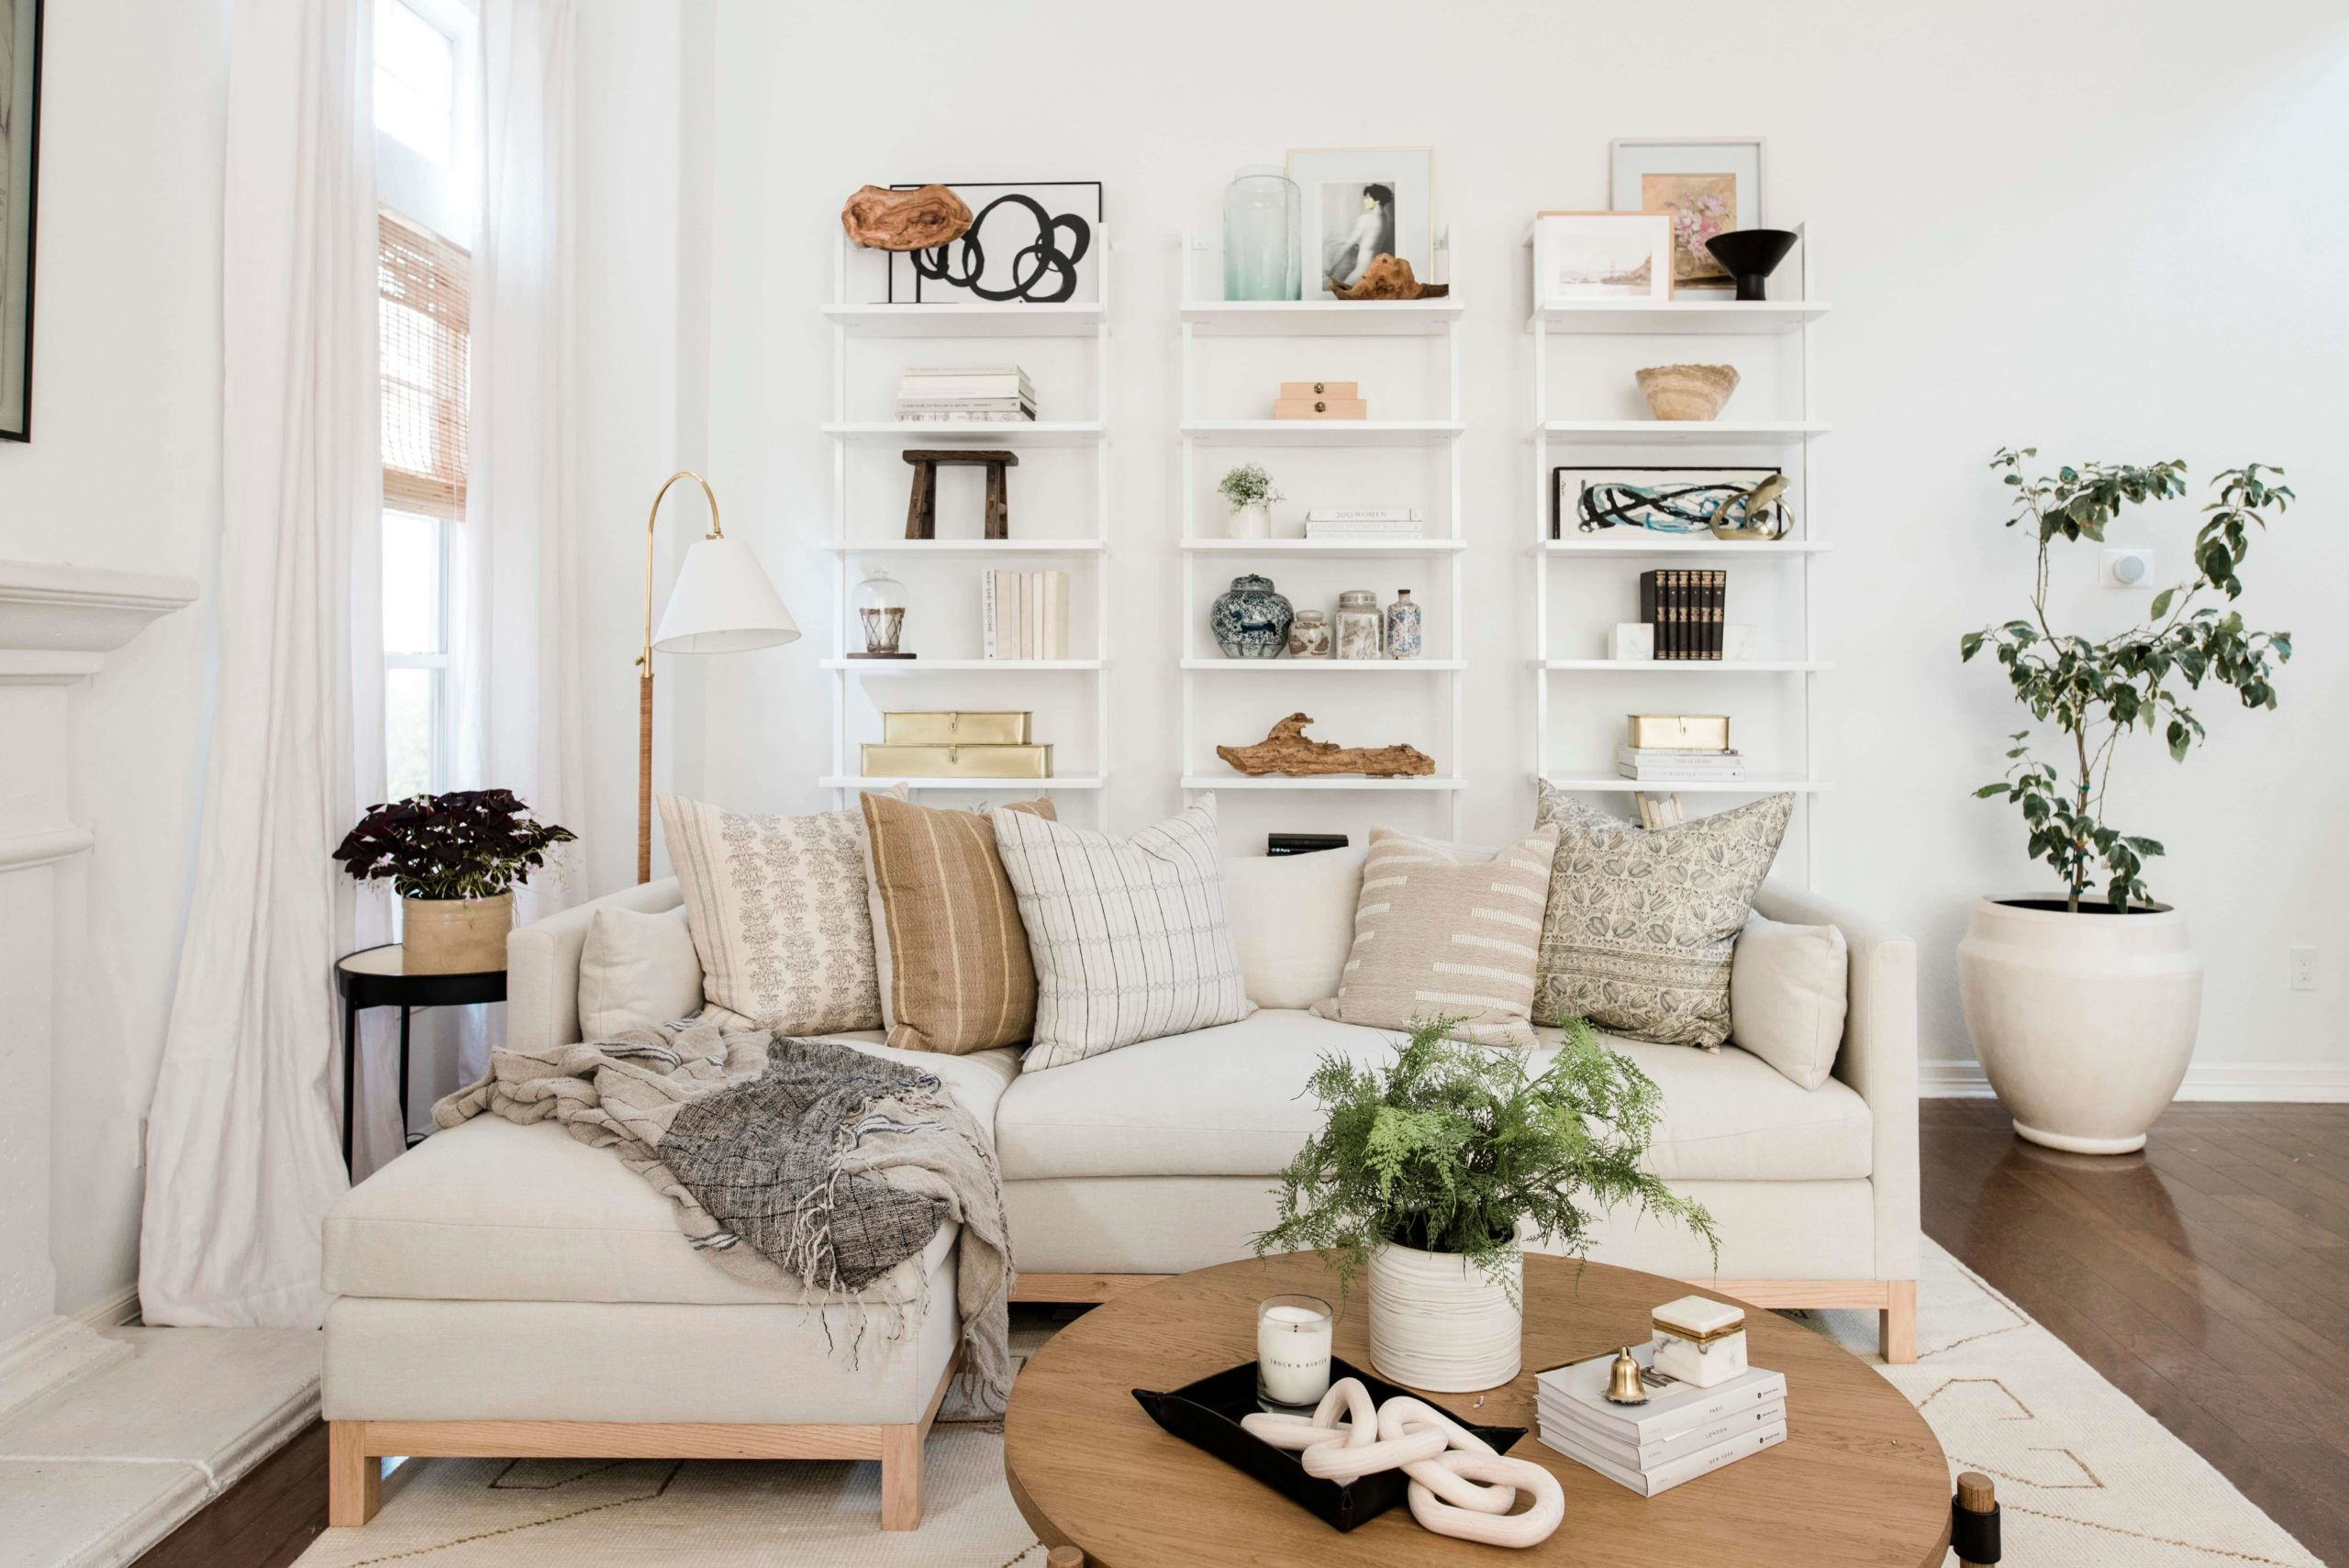 Bright and Airy Living Room GMDxLG Furniture Collection Hollingworth Sofa by Los Angeles Designer Ginny Macdonald Design